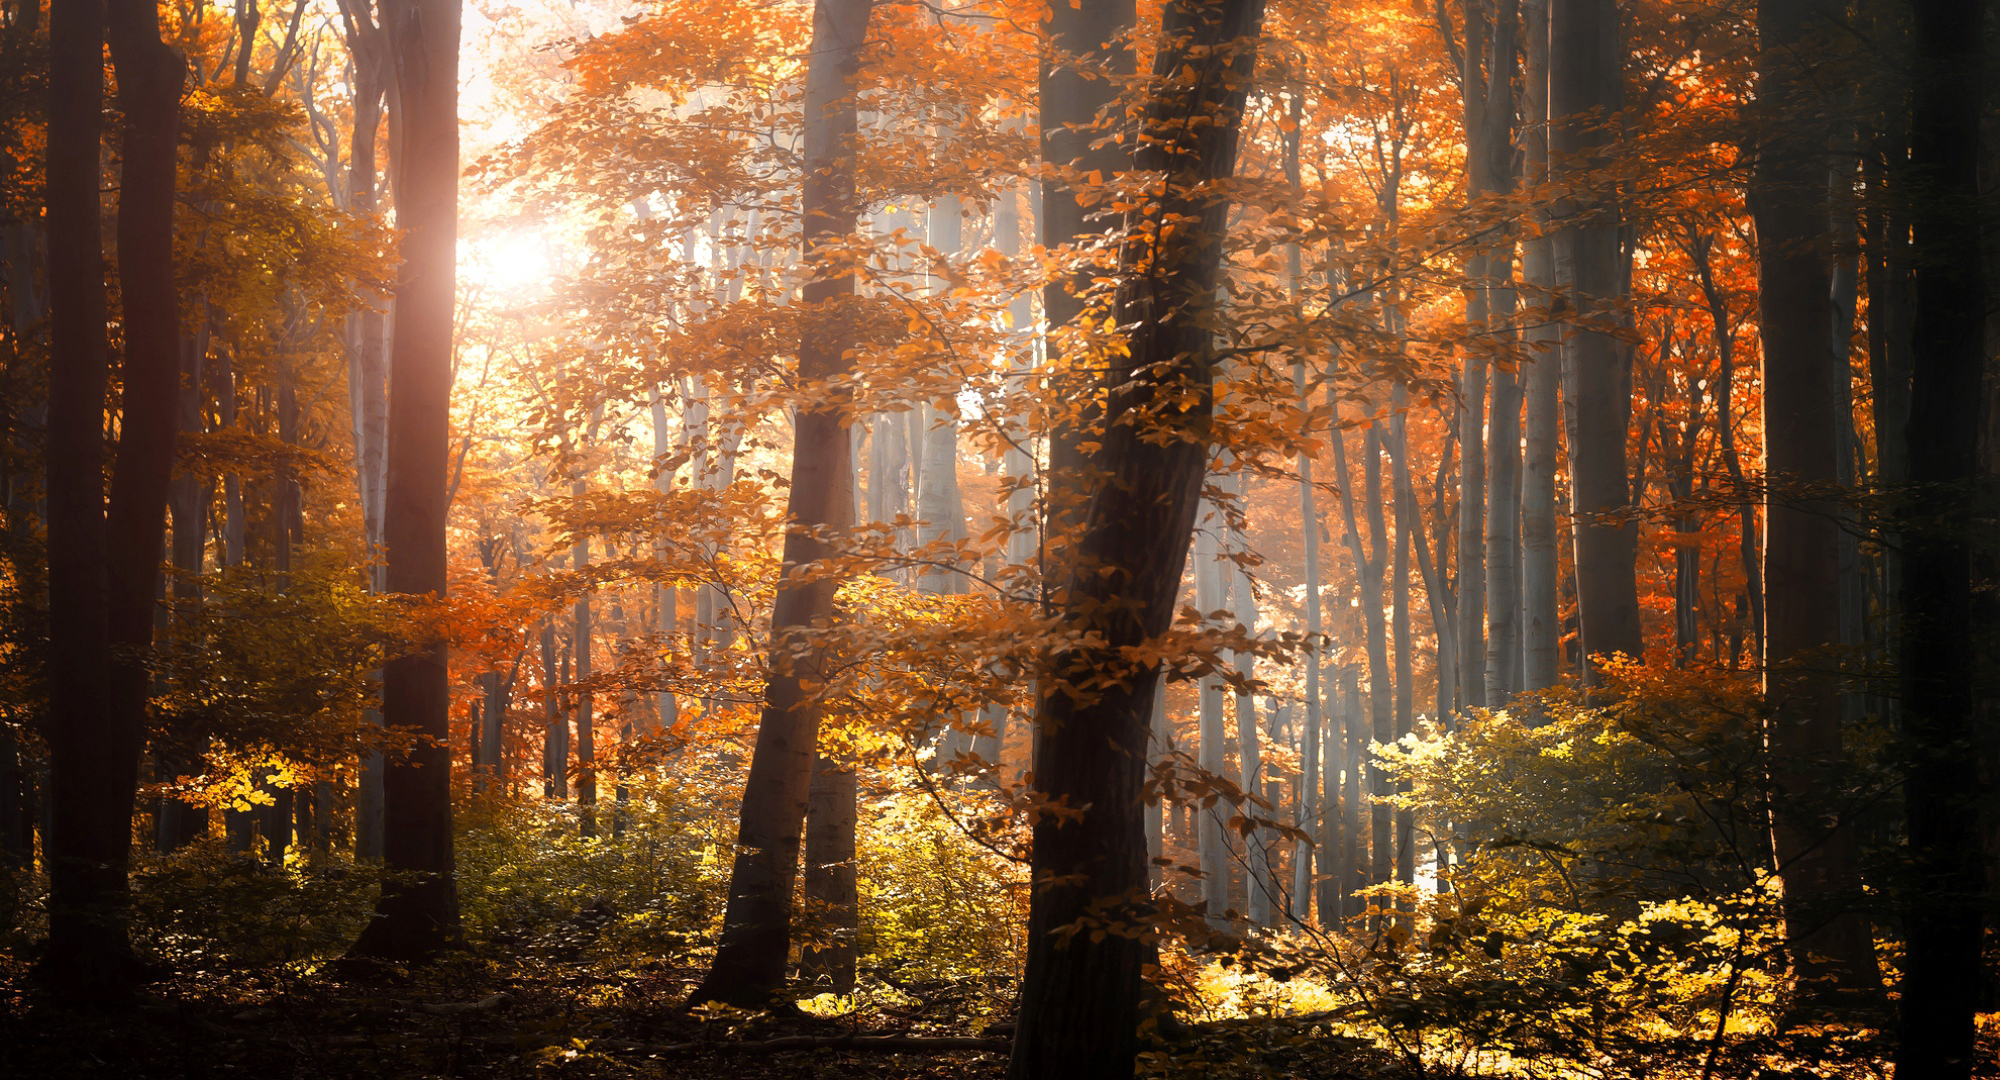 Pinterest Wallpapers Fall Forest Autumn Foliage Trees Leaves Orange Yellow Light